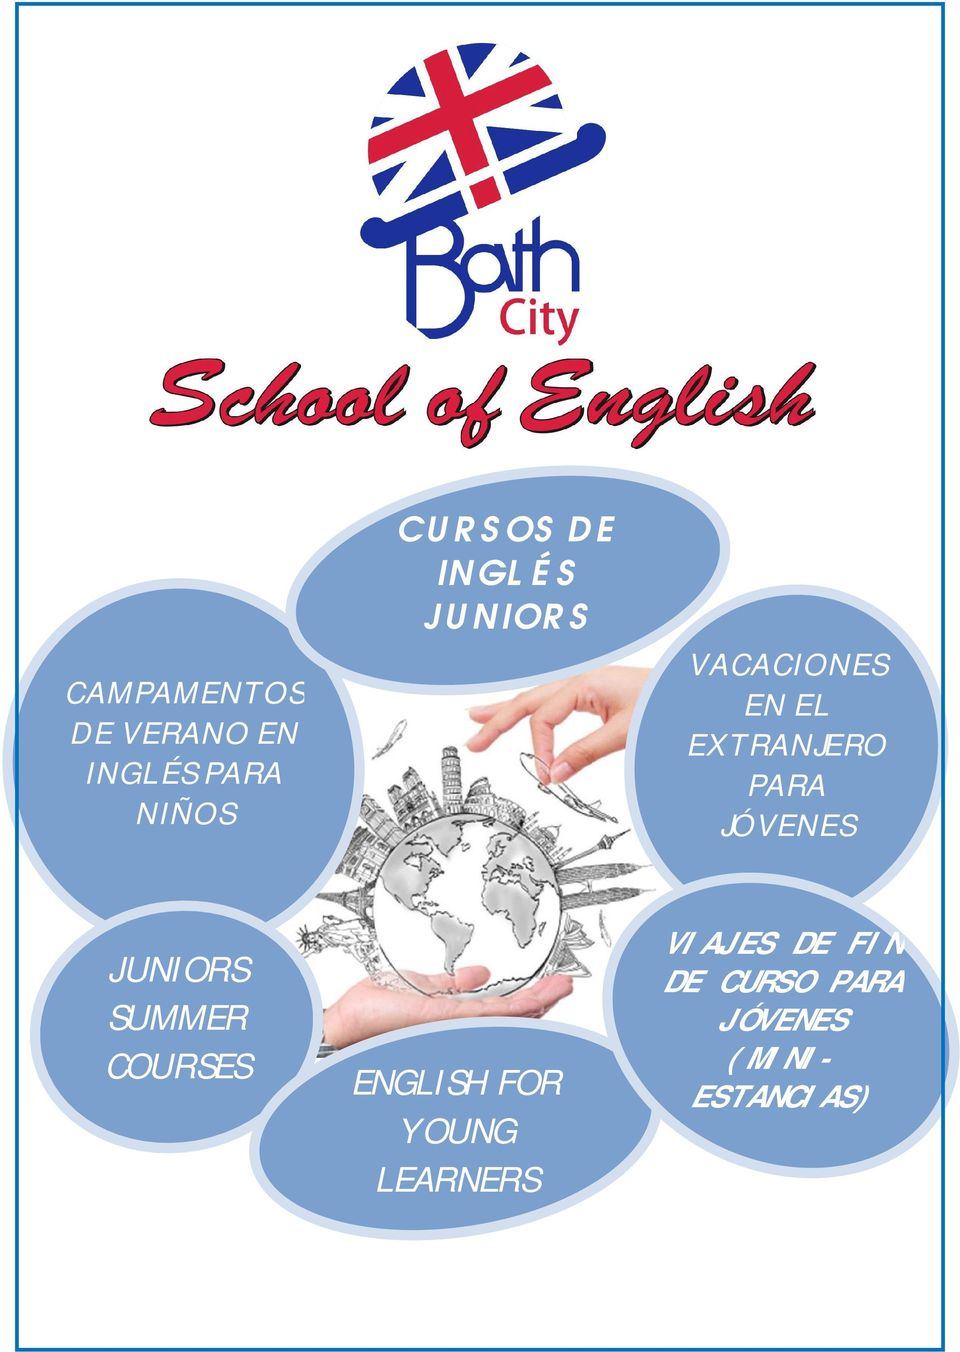 JÓVENES JUNIORS SUMMER COURSES ENGLISH FOR YOUNG